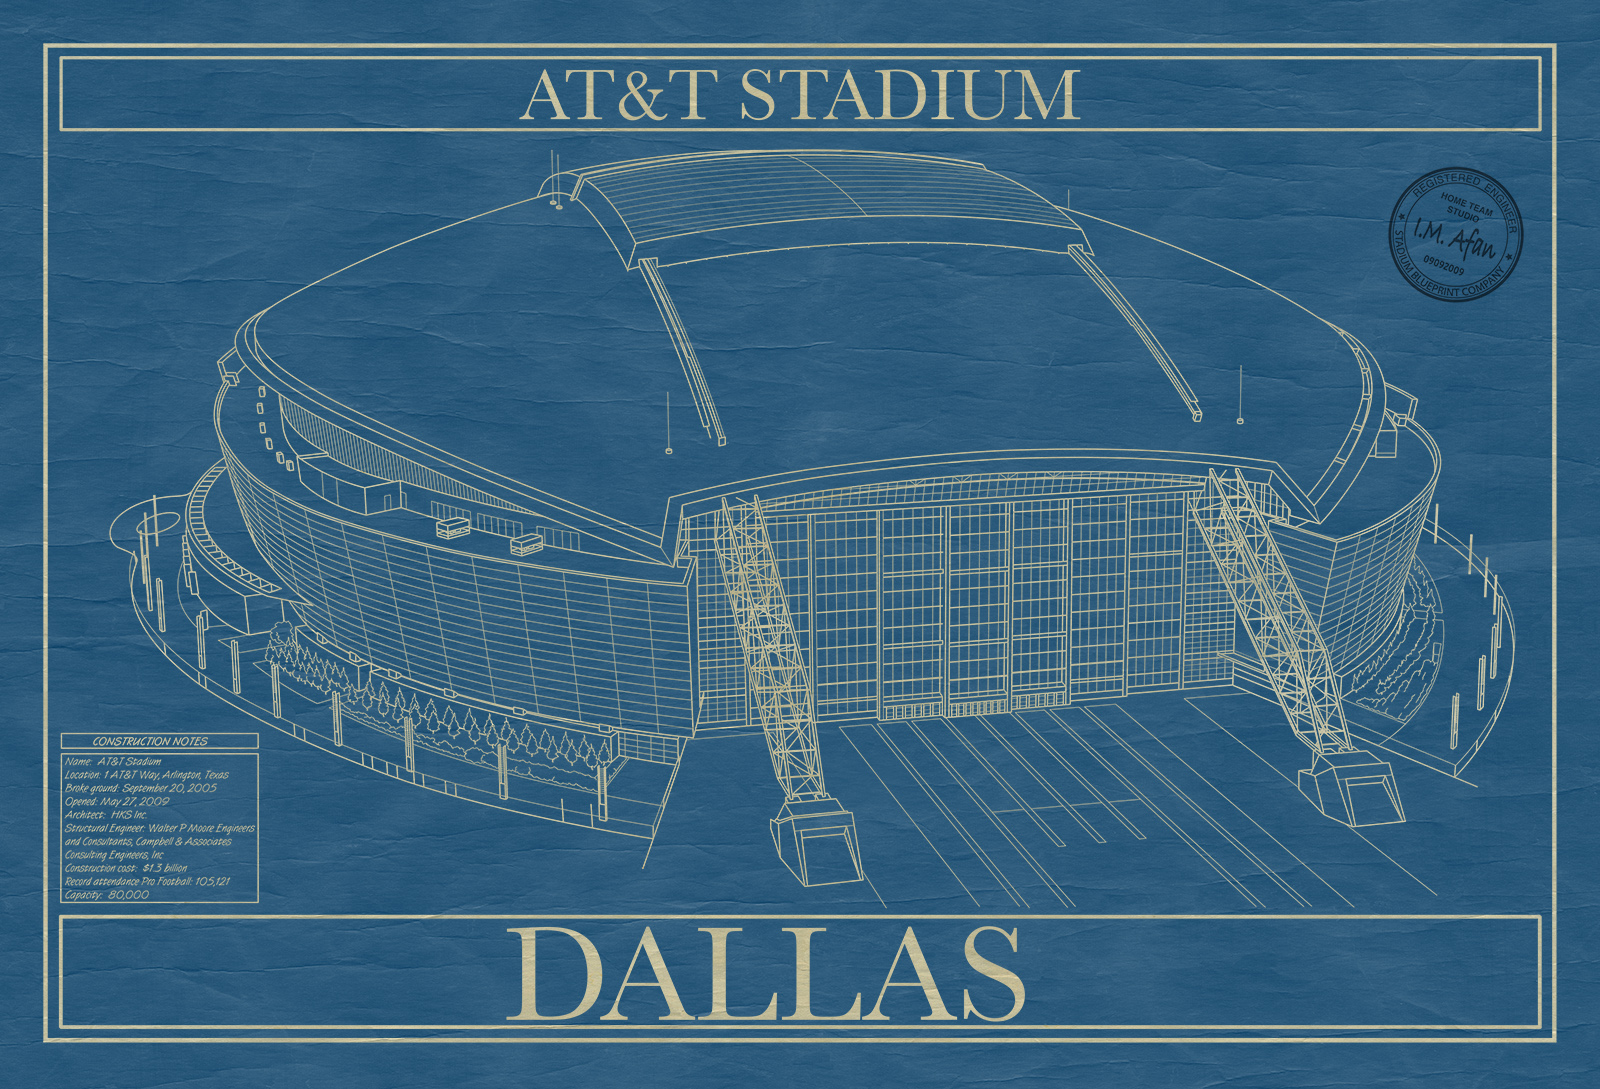 Dallas att stadium stadium blueprint company dallas att stadium malvernweather